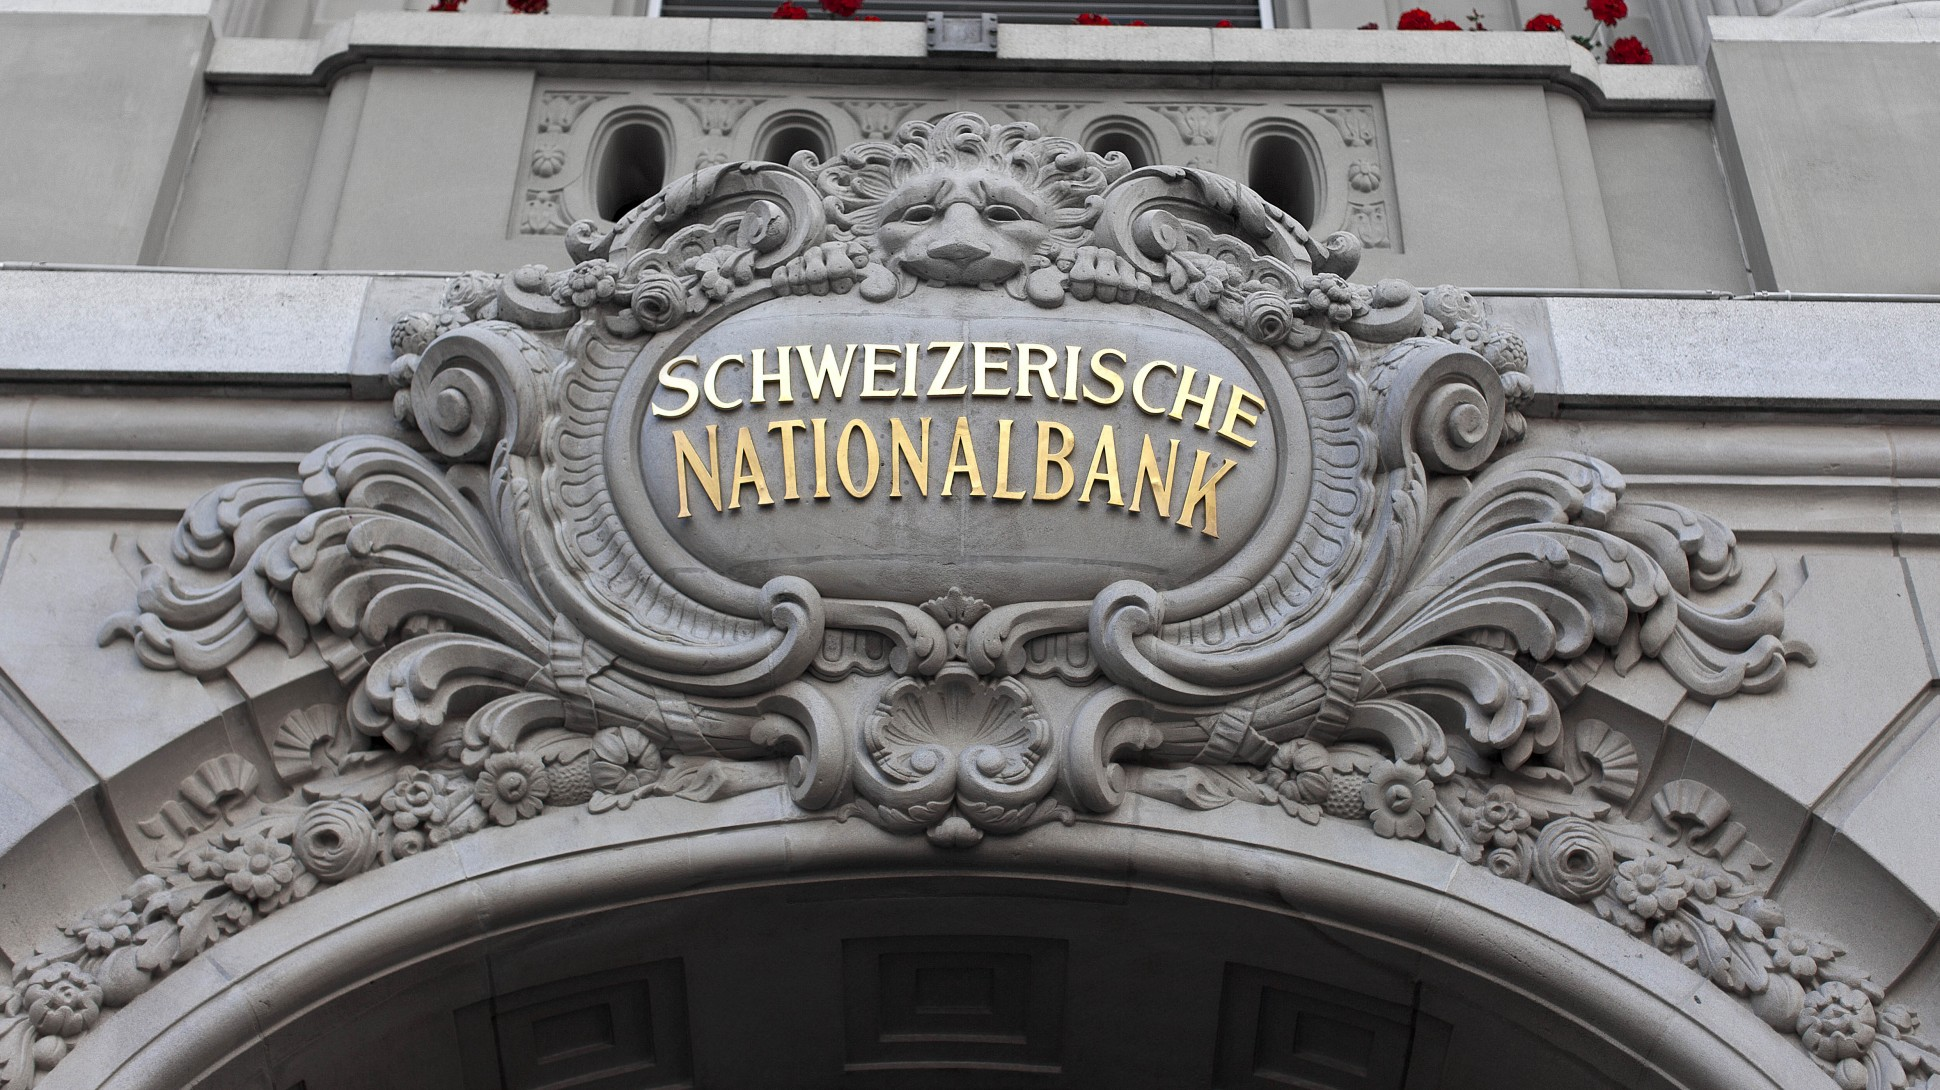 swiss-bank-kuchhnaya02